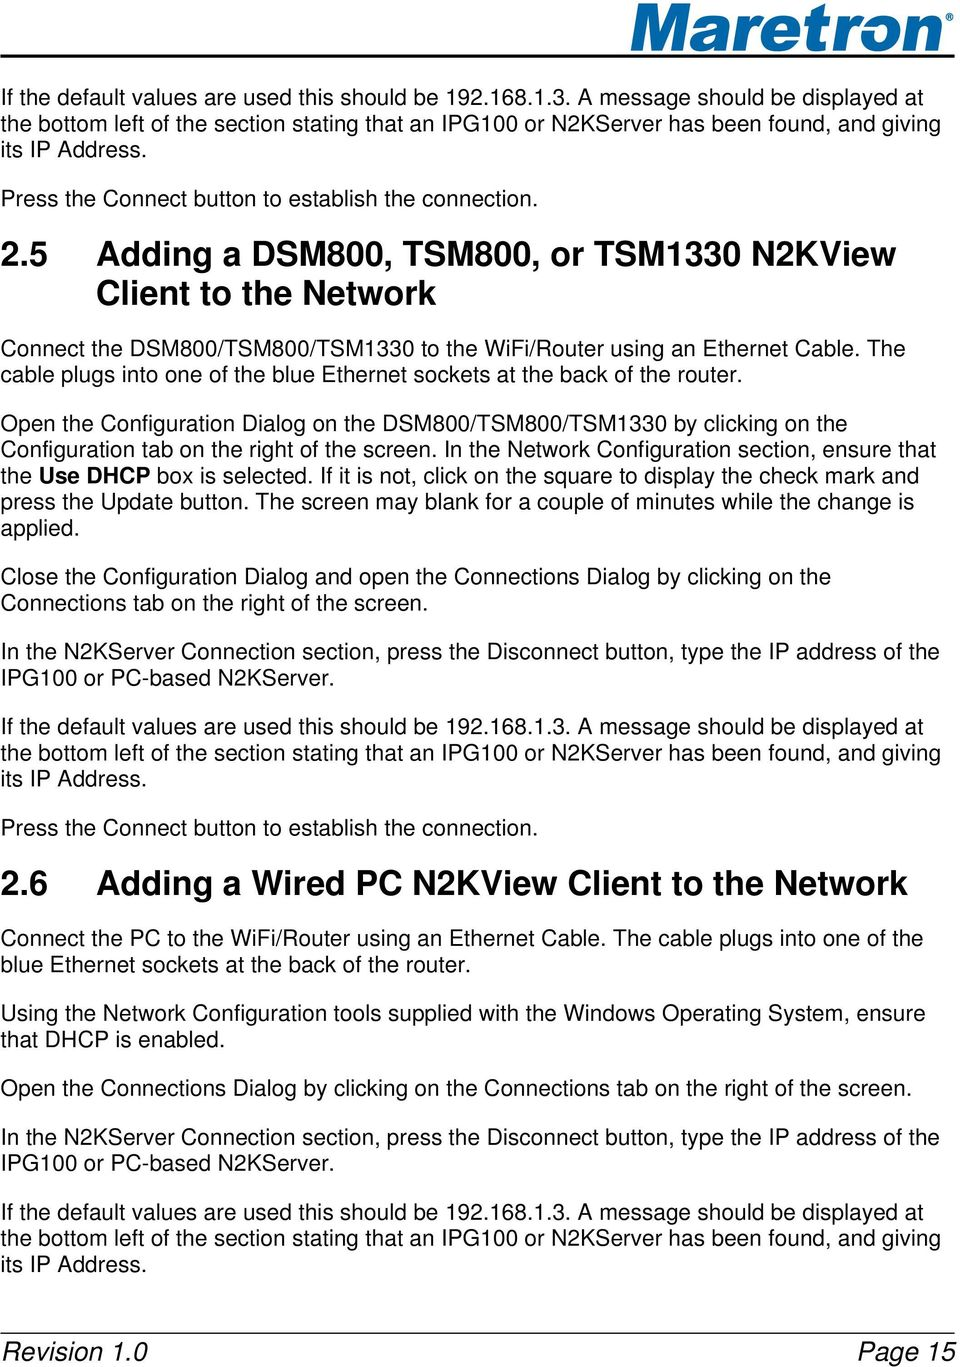 5 Adding a DSM800, TSM800, or TSM1330 N2KView Client to the Network Connect the DSM800/TSM800/TSM1330 to the WiFi/Router using an Ethernet Cable.